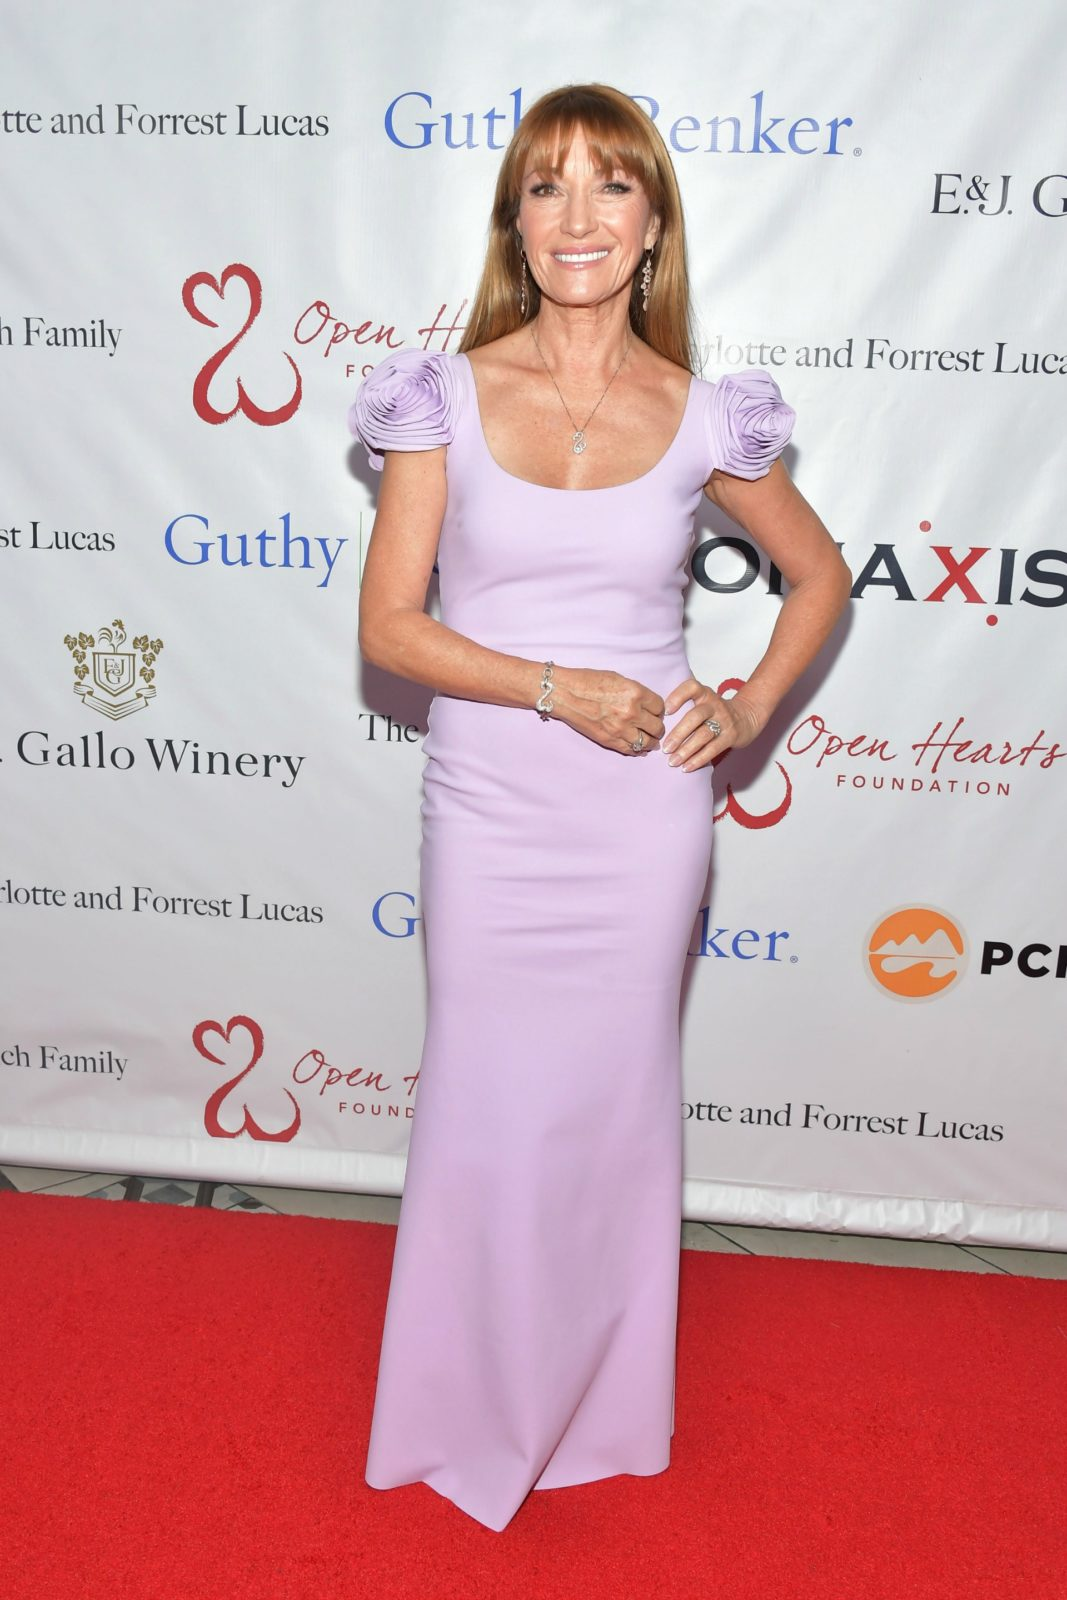 Jane Seymour attends The Open Hearts Foundation's 2019 Open Hearts Gala.